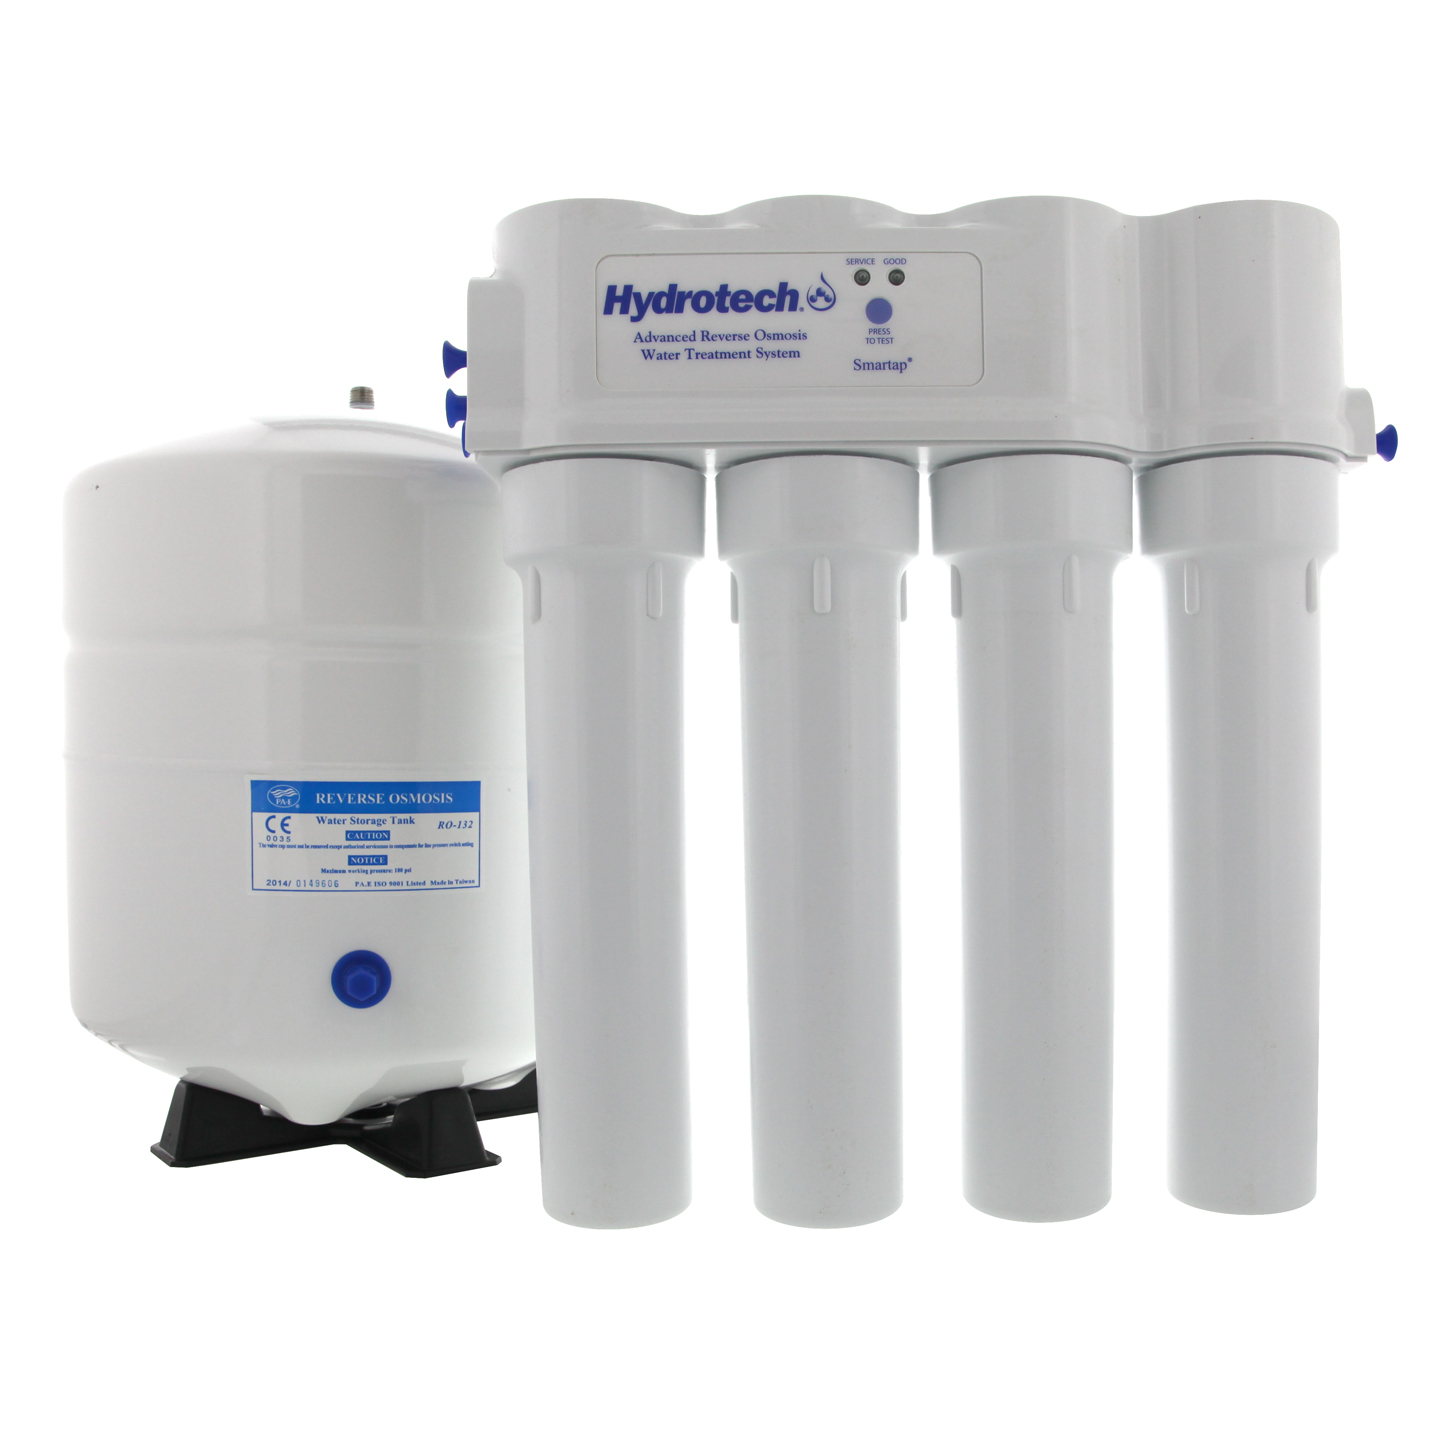 Hydrotech 4VTFC9G-PB Pushbutton Reverse Osmosis System